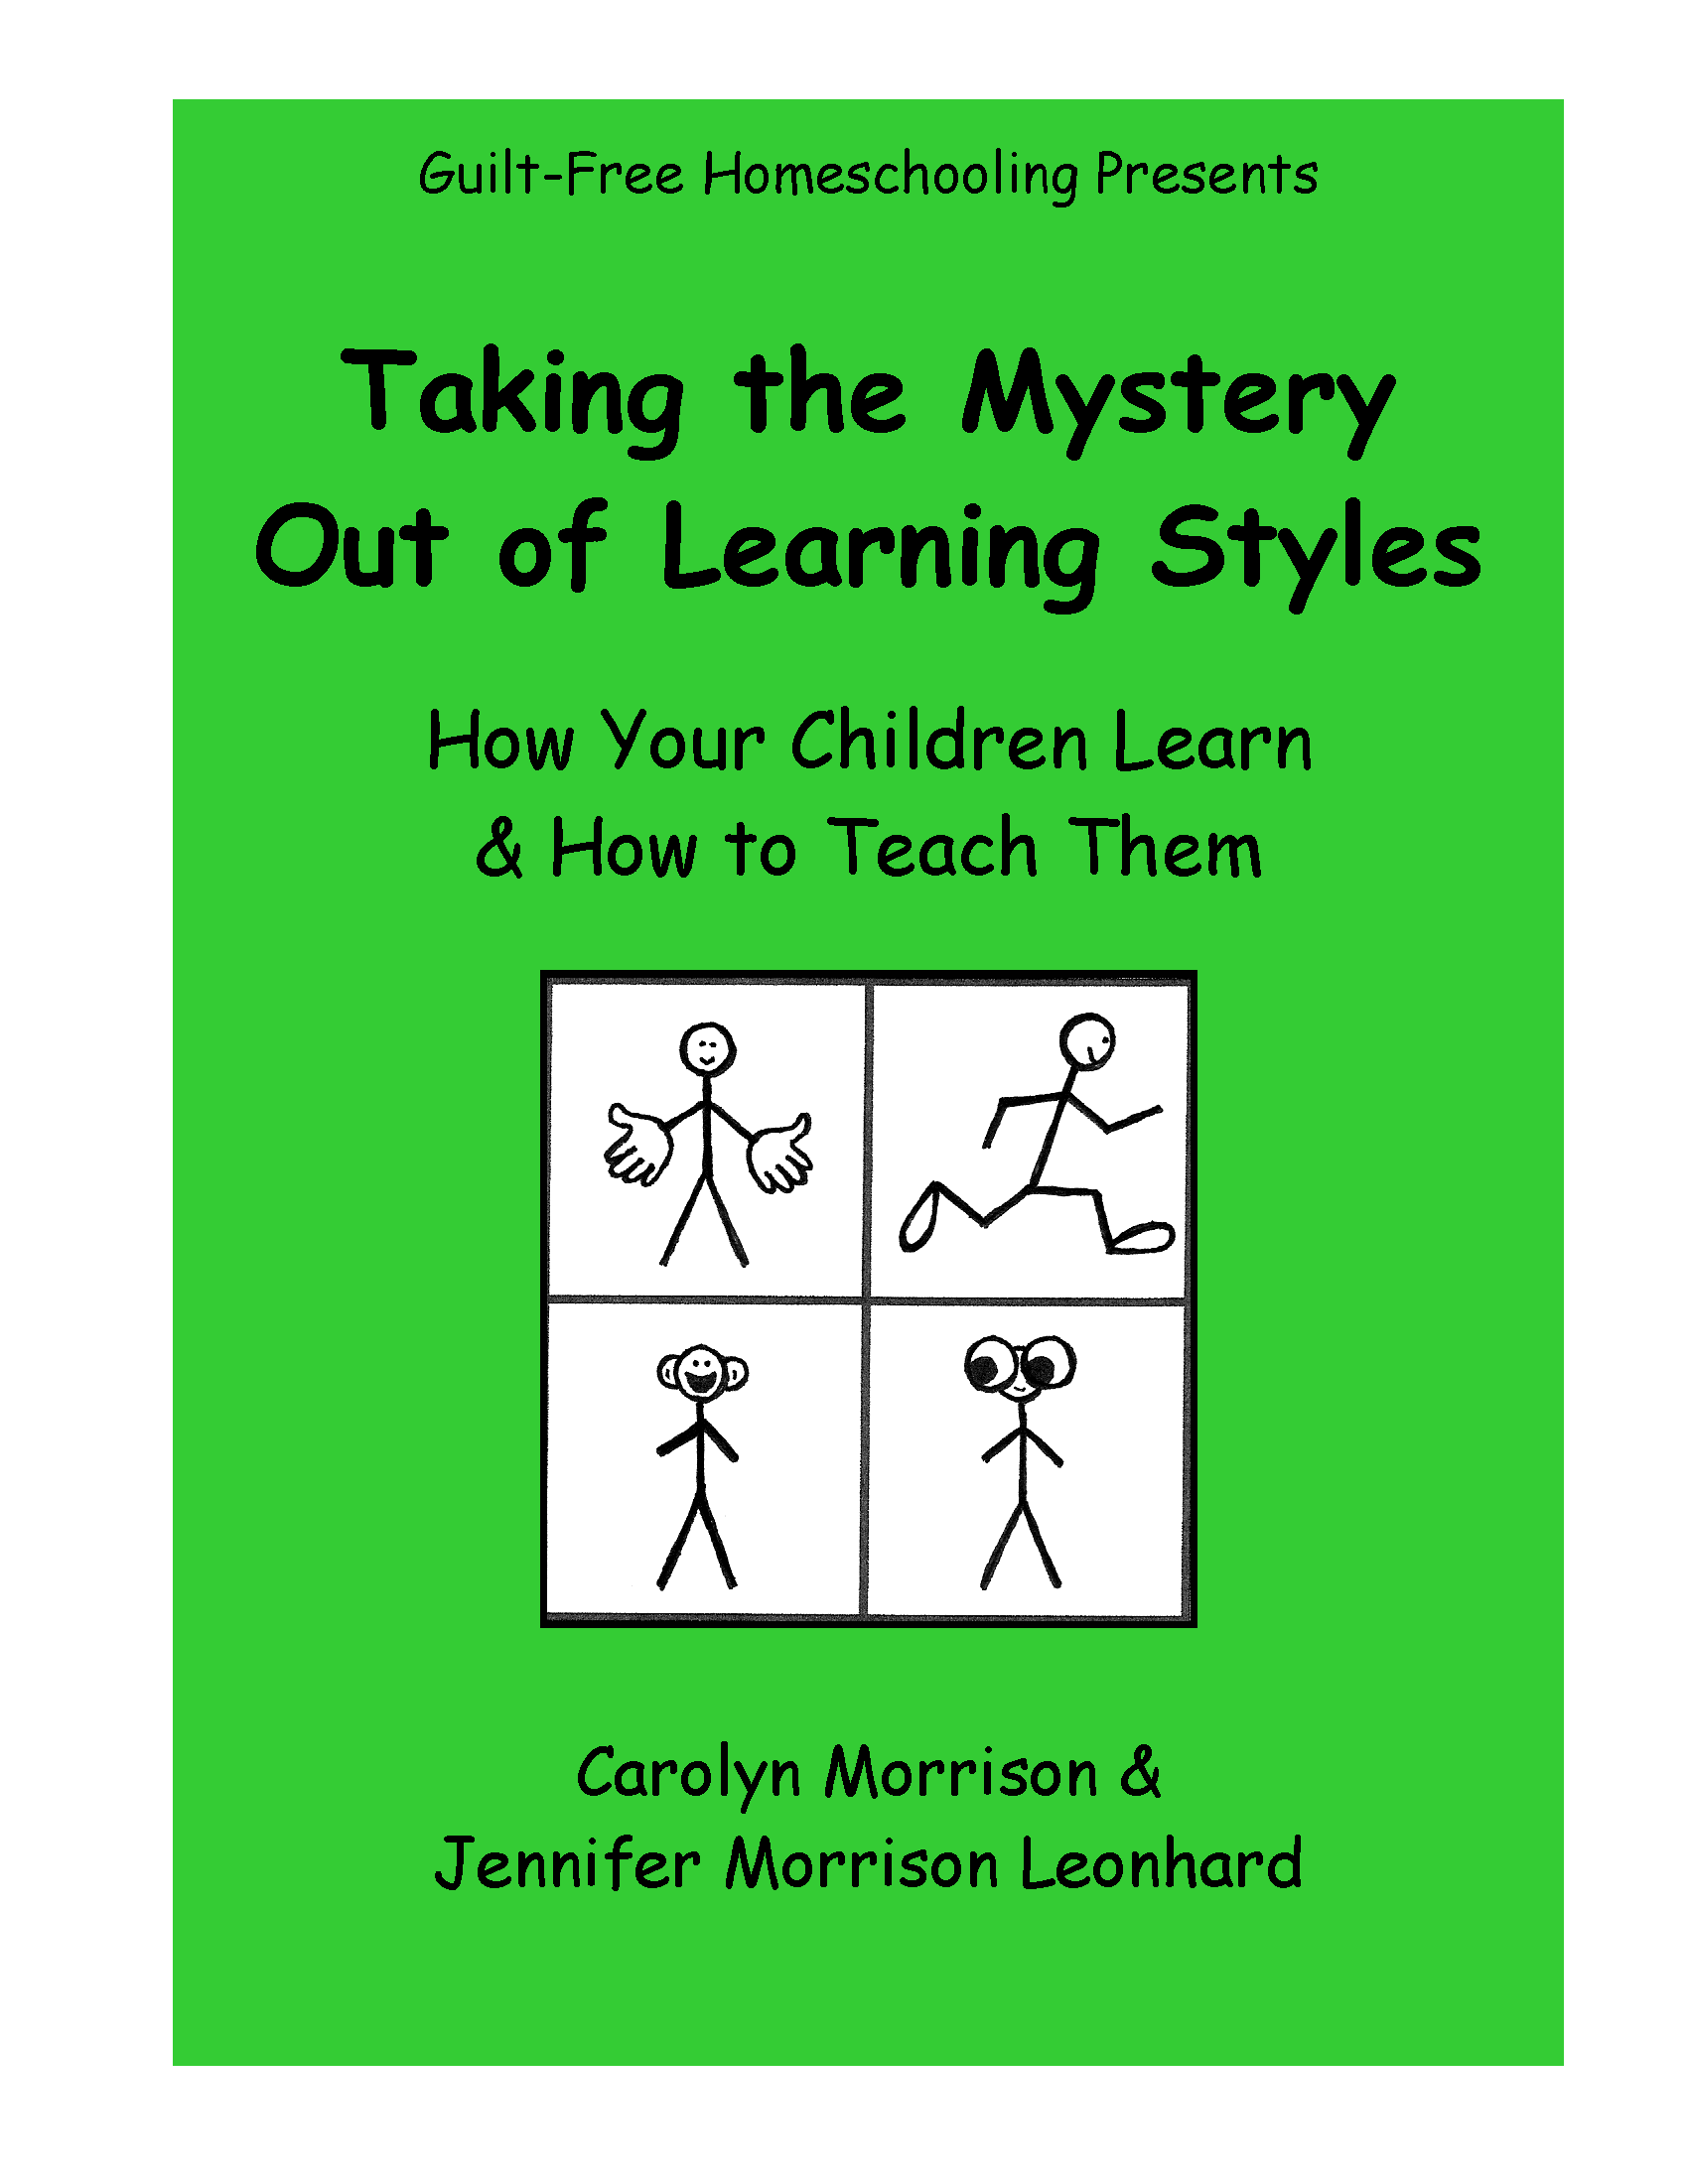 a description of the notion of learning styles This notion of individualized learning styles has gained widespread recognition in  vark is an acronym that refers to the four types of learning styles: visual,.